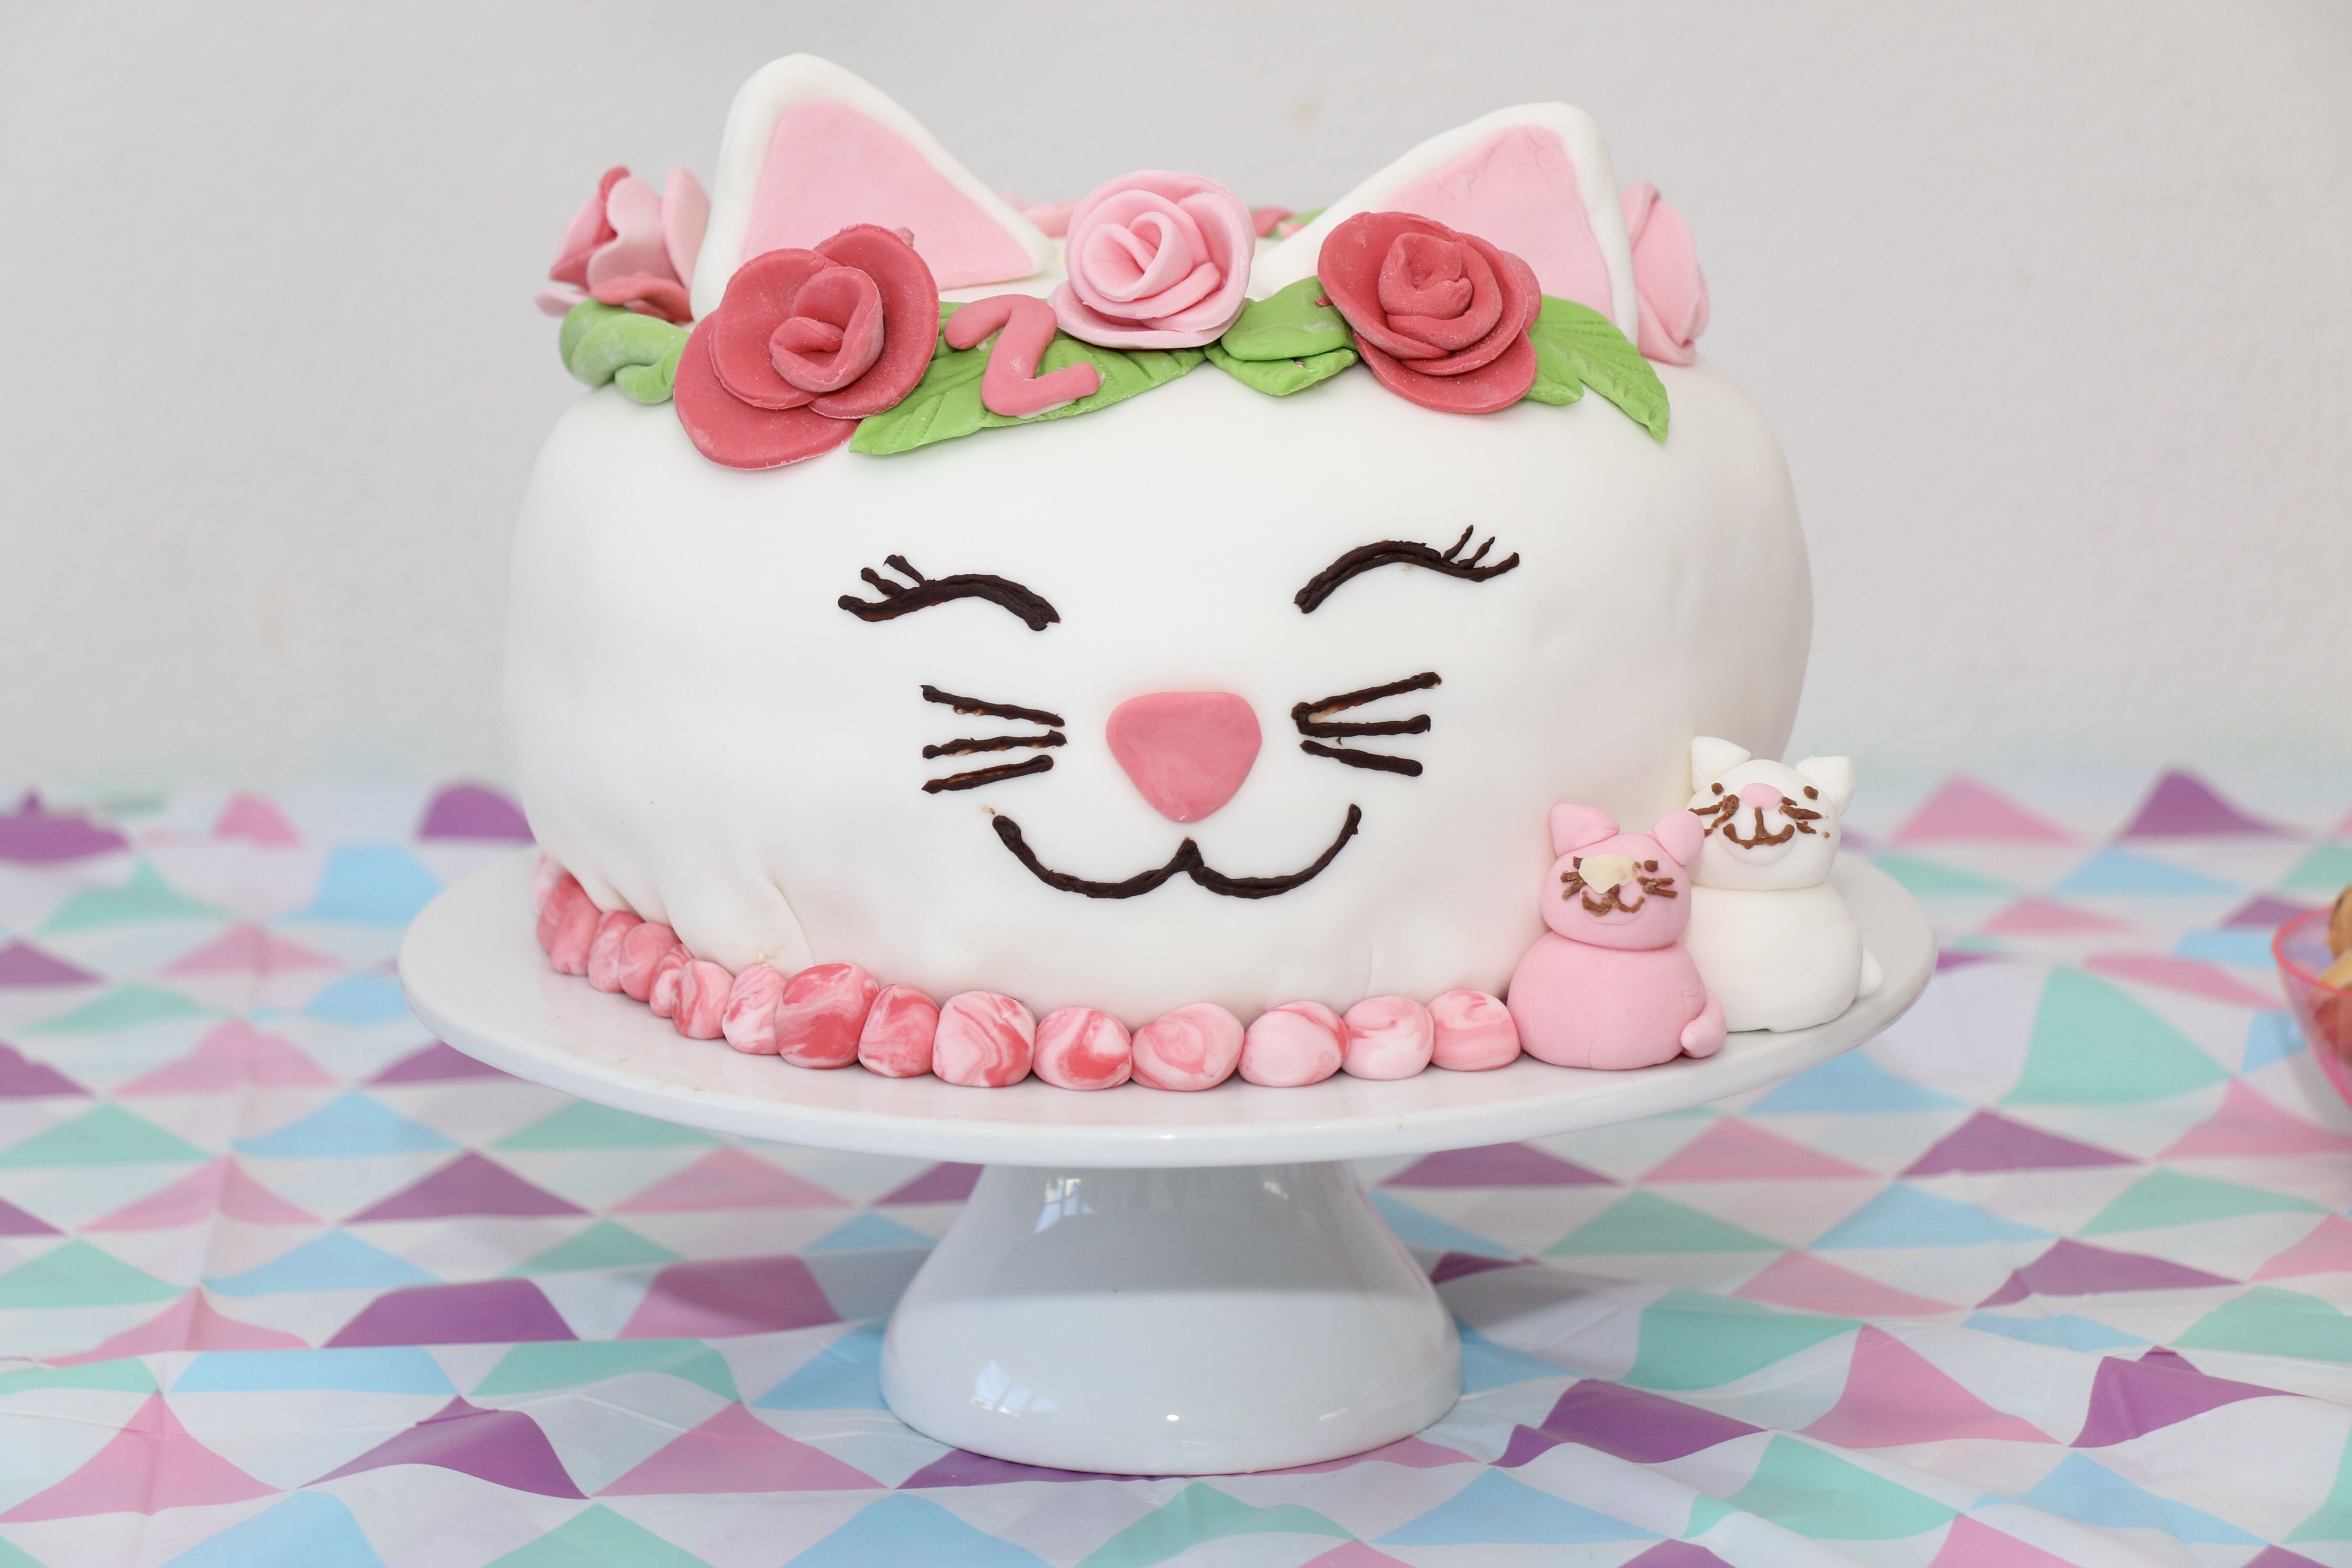 Swell Catcake Made For My Daughters 2Nd Birthday She Loves Cats Funny Birthday Cards Online Ioscodamsfinfo